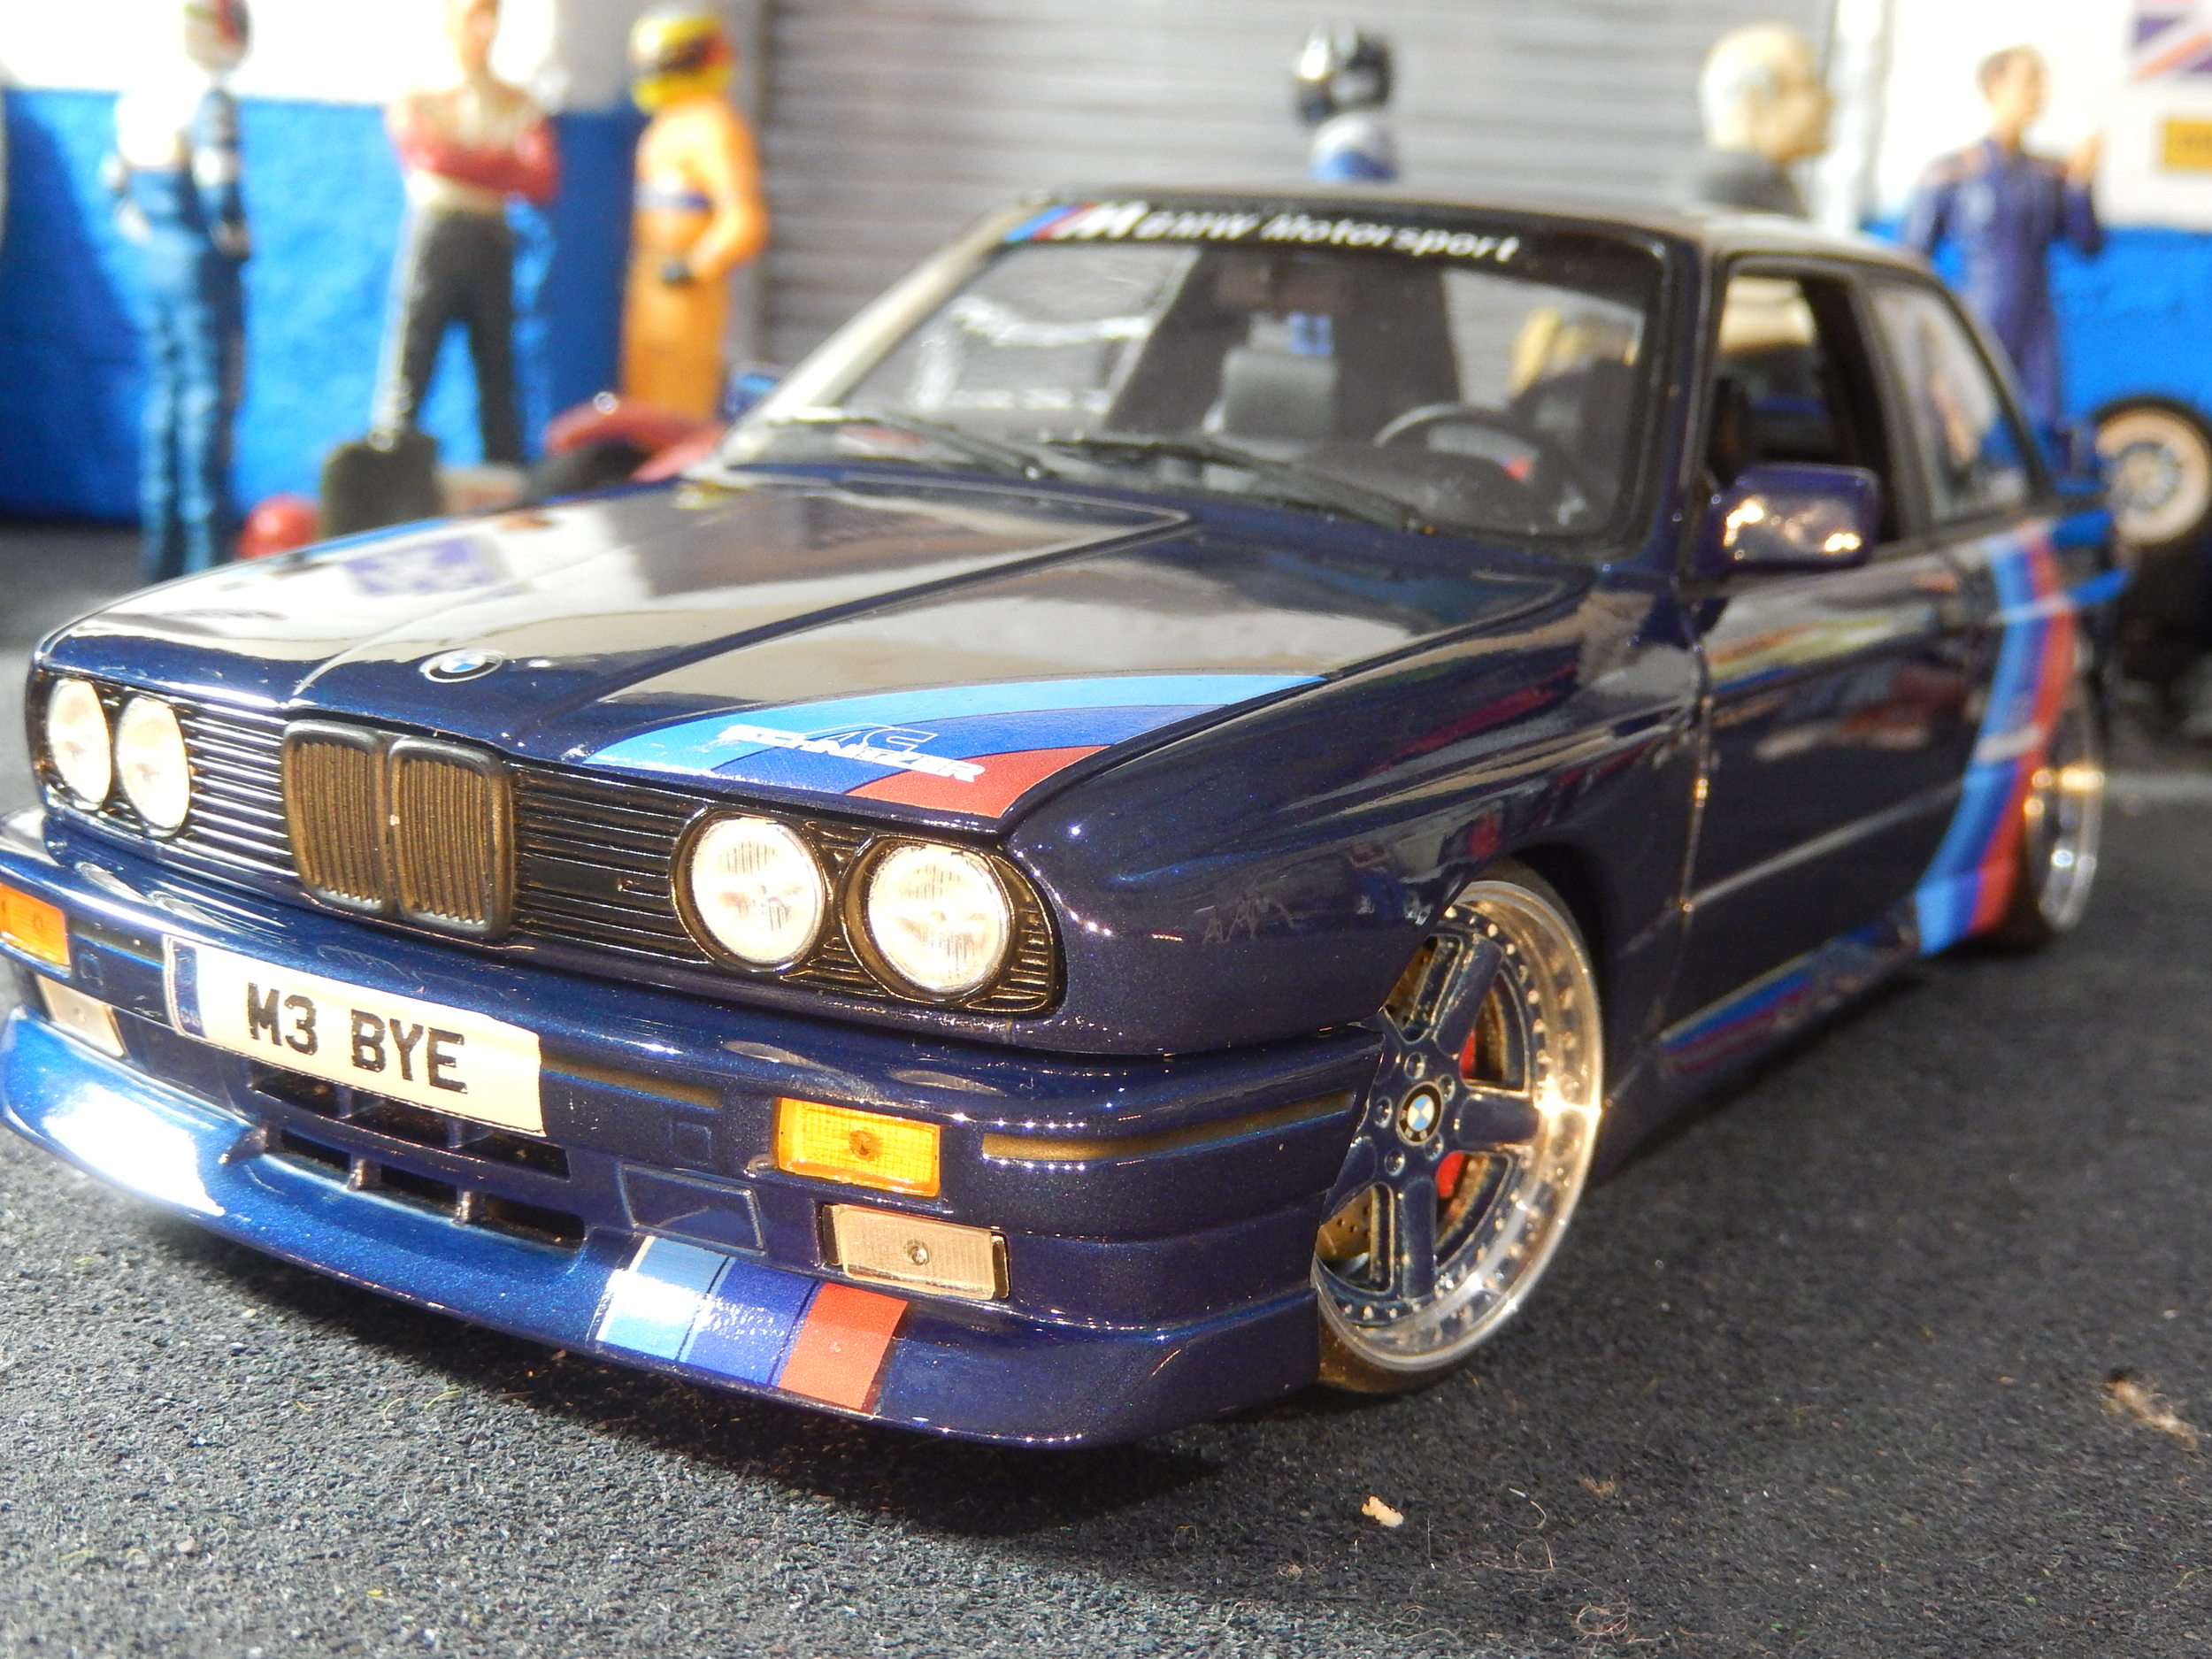 E30 Bmw M3 Schnitzer Modified Tuning 1 18 Scale By Minichamps Cs Diecast Tuning